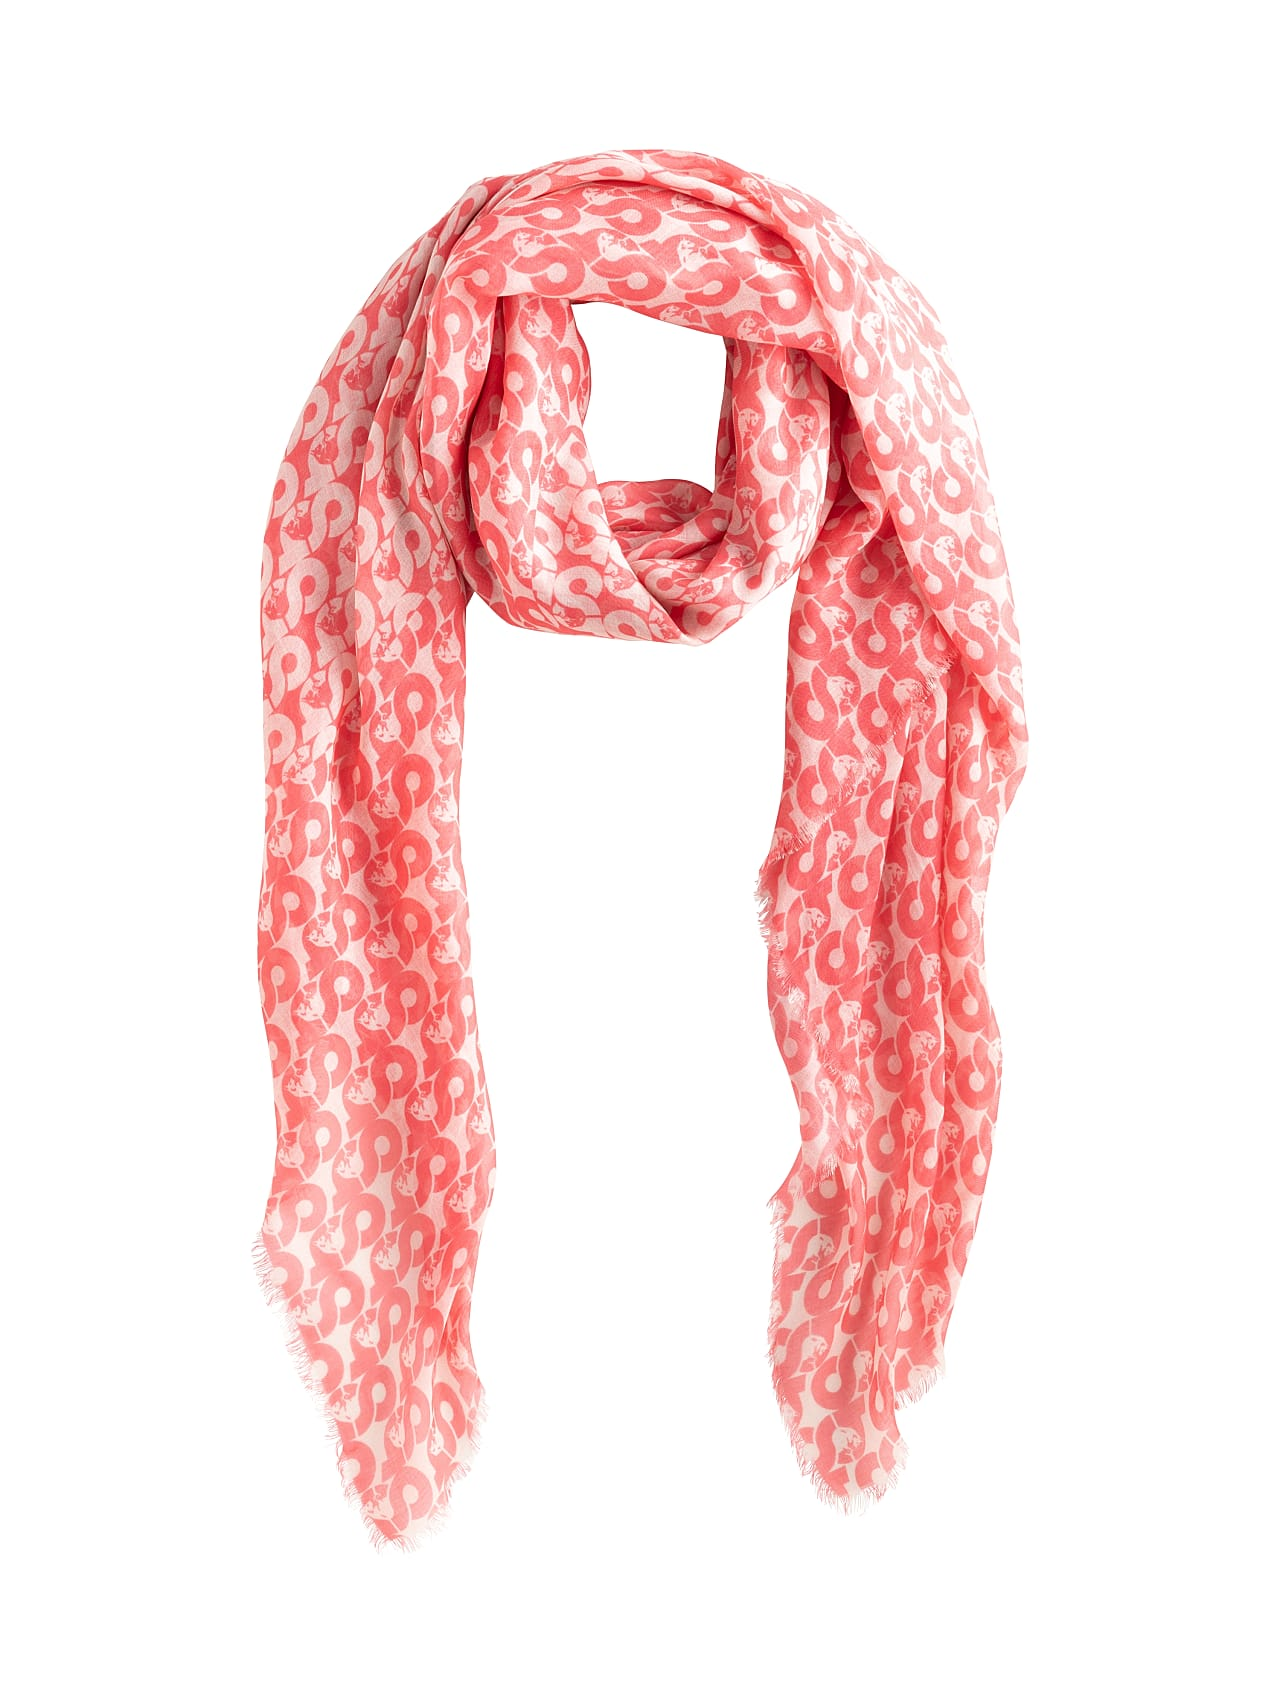 ANZA V4.Y4.01 All Over Print Scarf coral / other Back Alpha Tauri